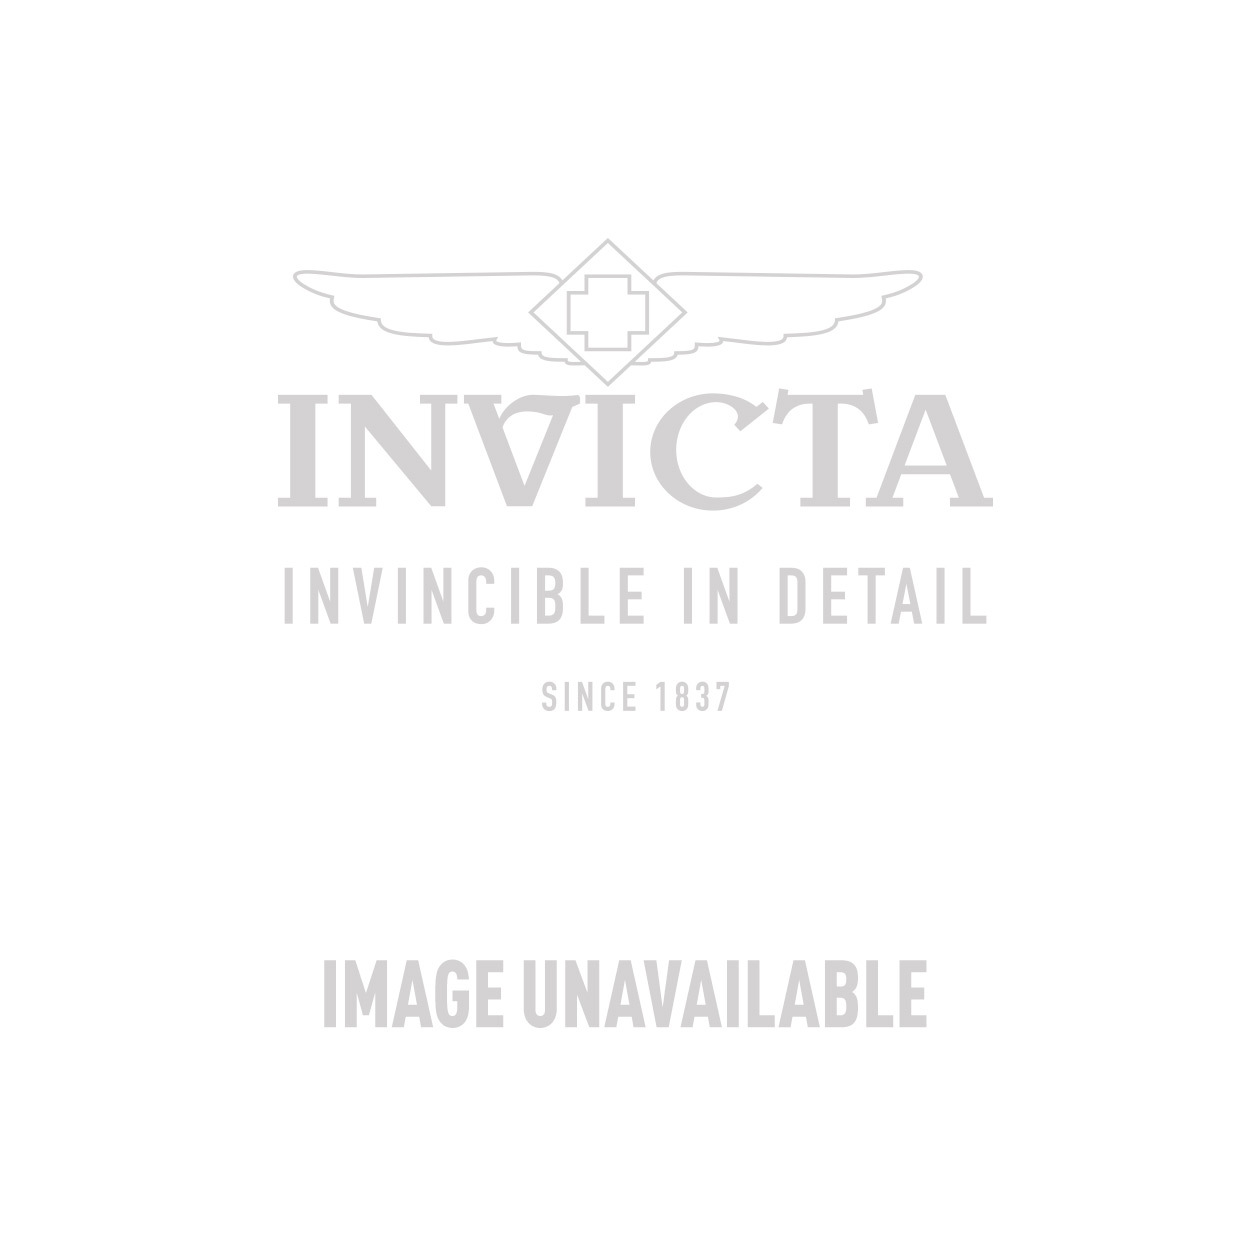 Invicta I-Force Quartz Watch - Stainless Steel case with Black tone Rifle band - Model 1514